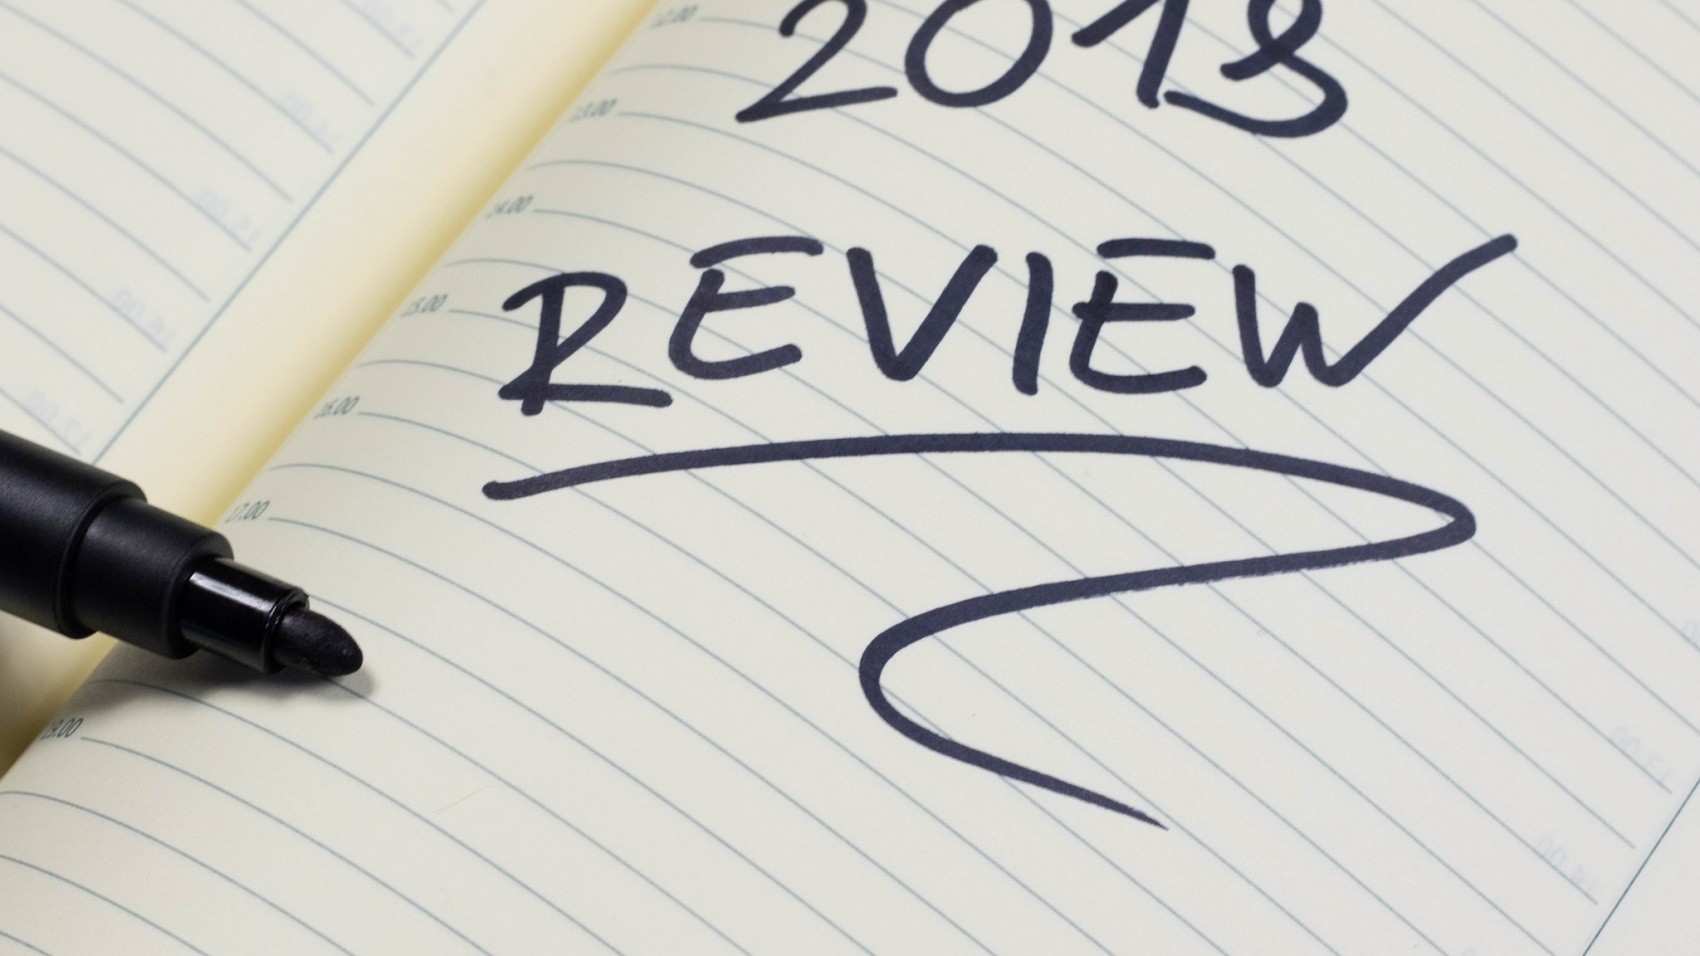 Notebook with 2018 Review written on it